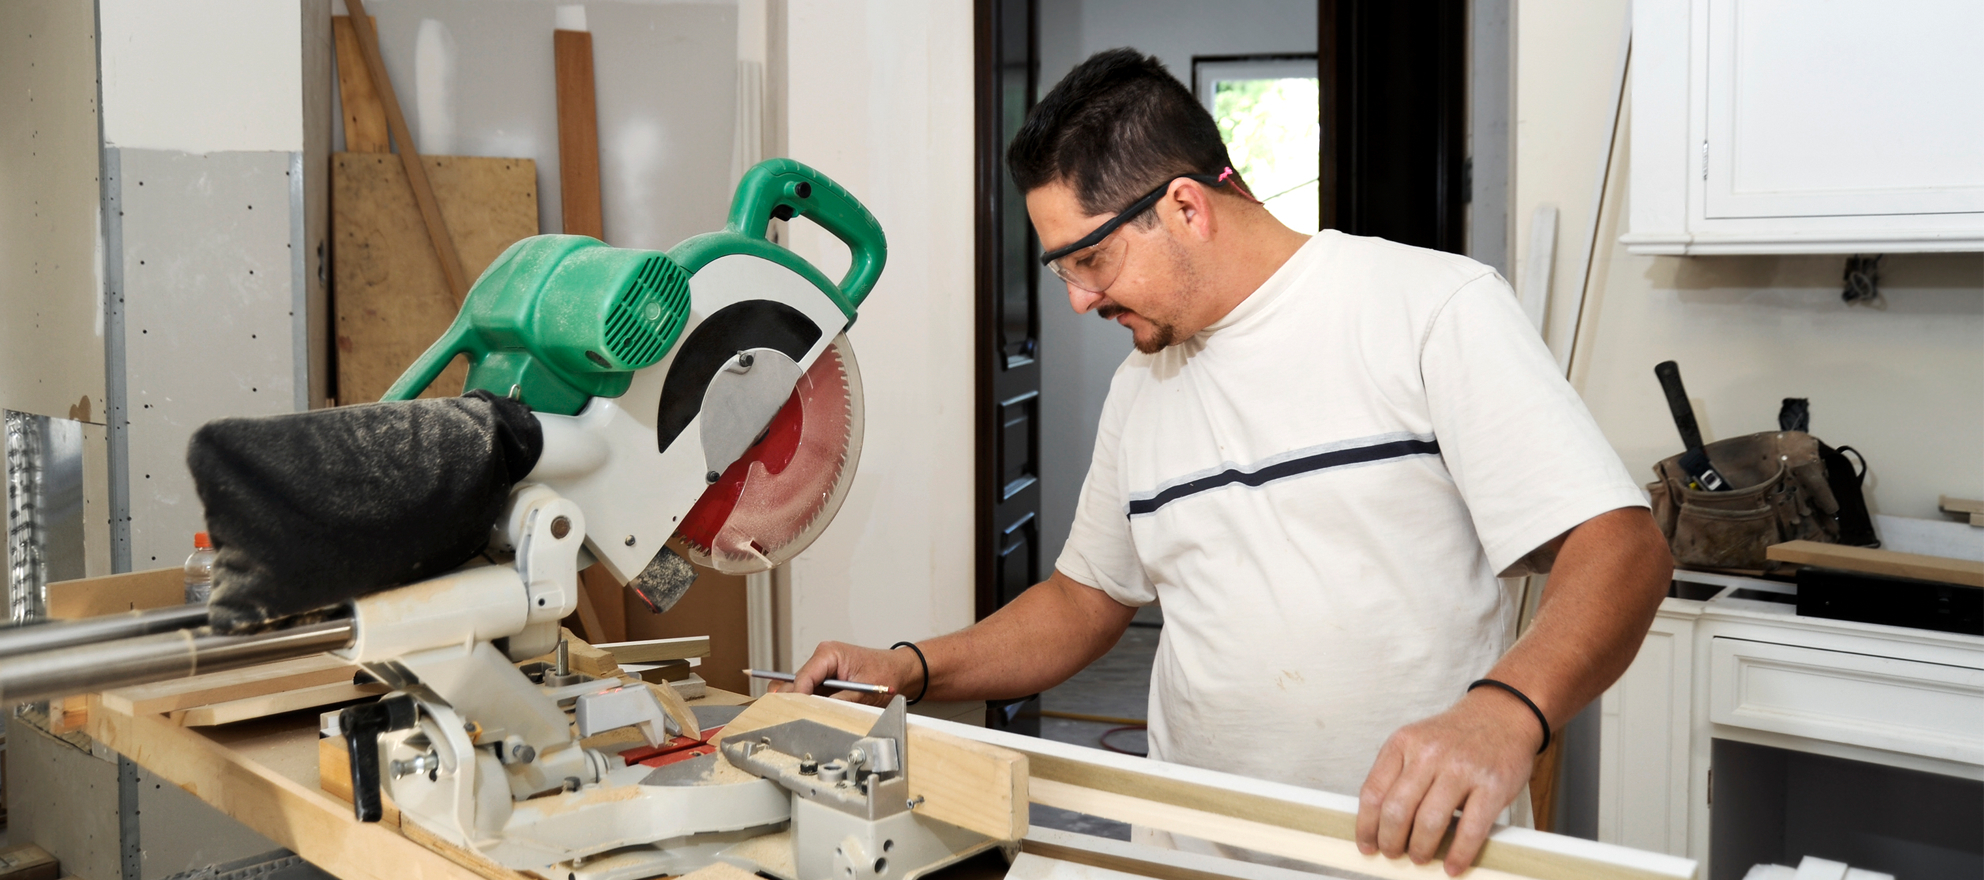 Should boomers renovate before selling?